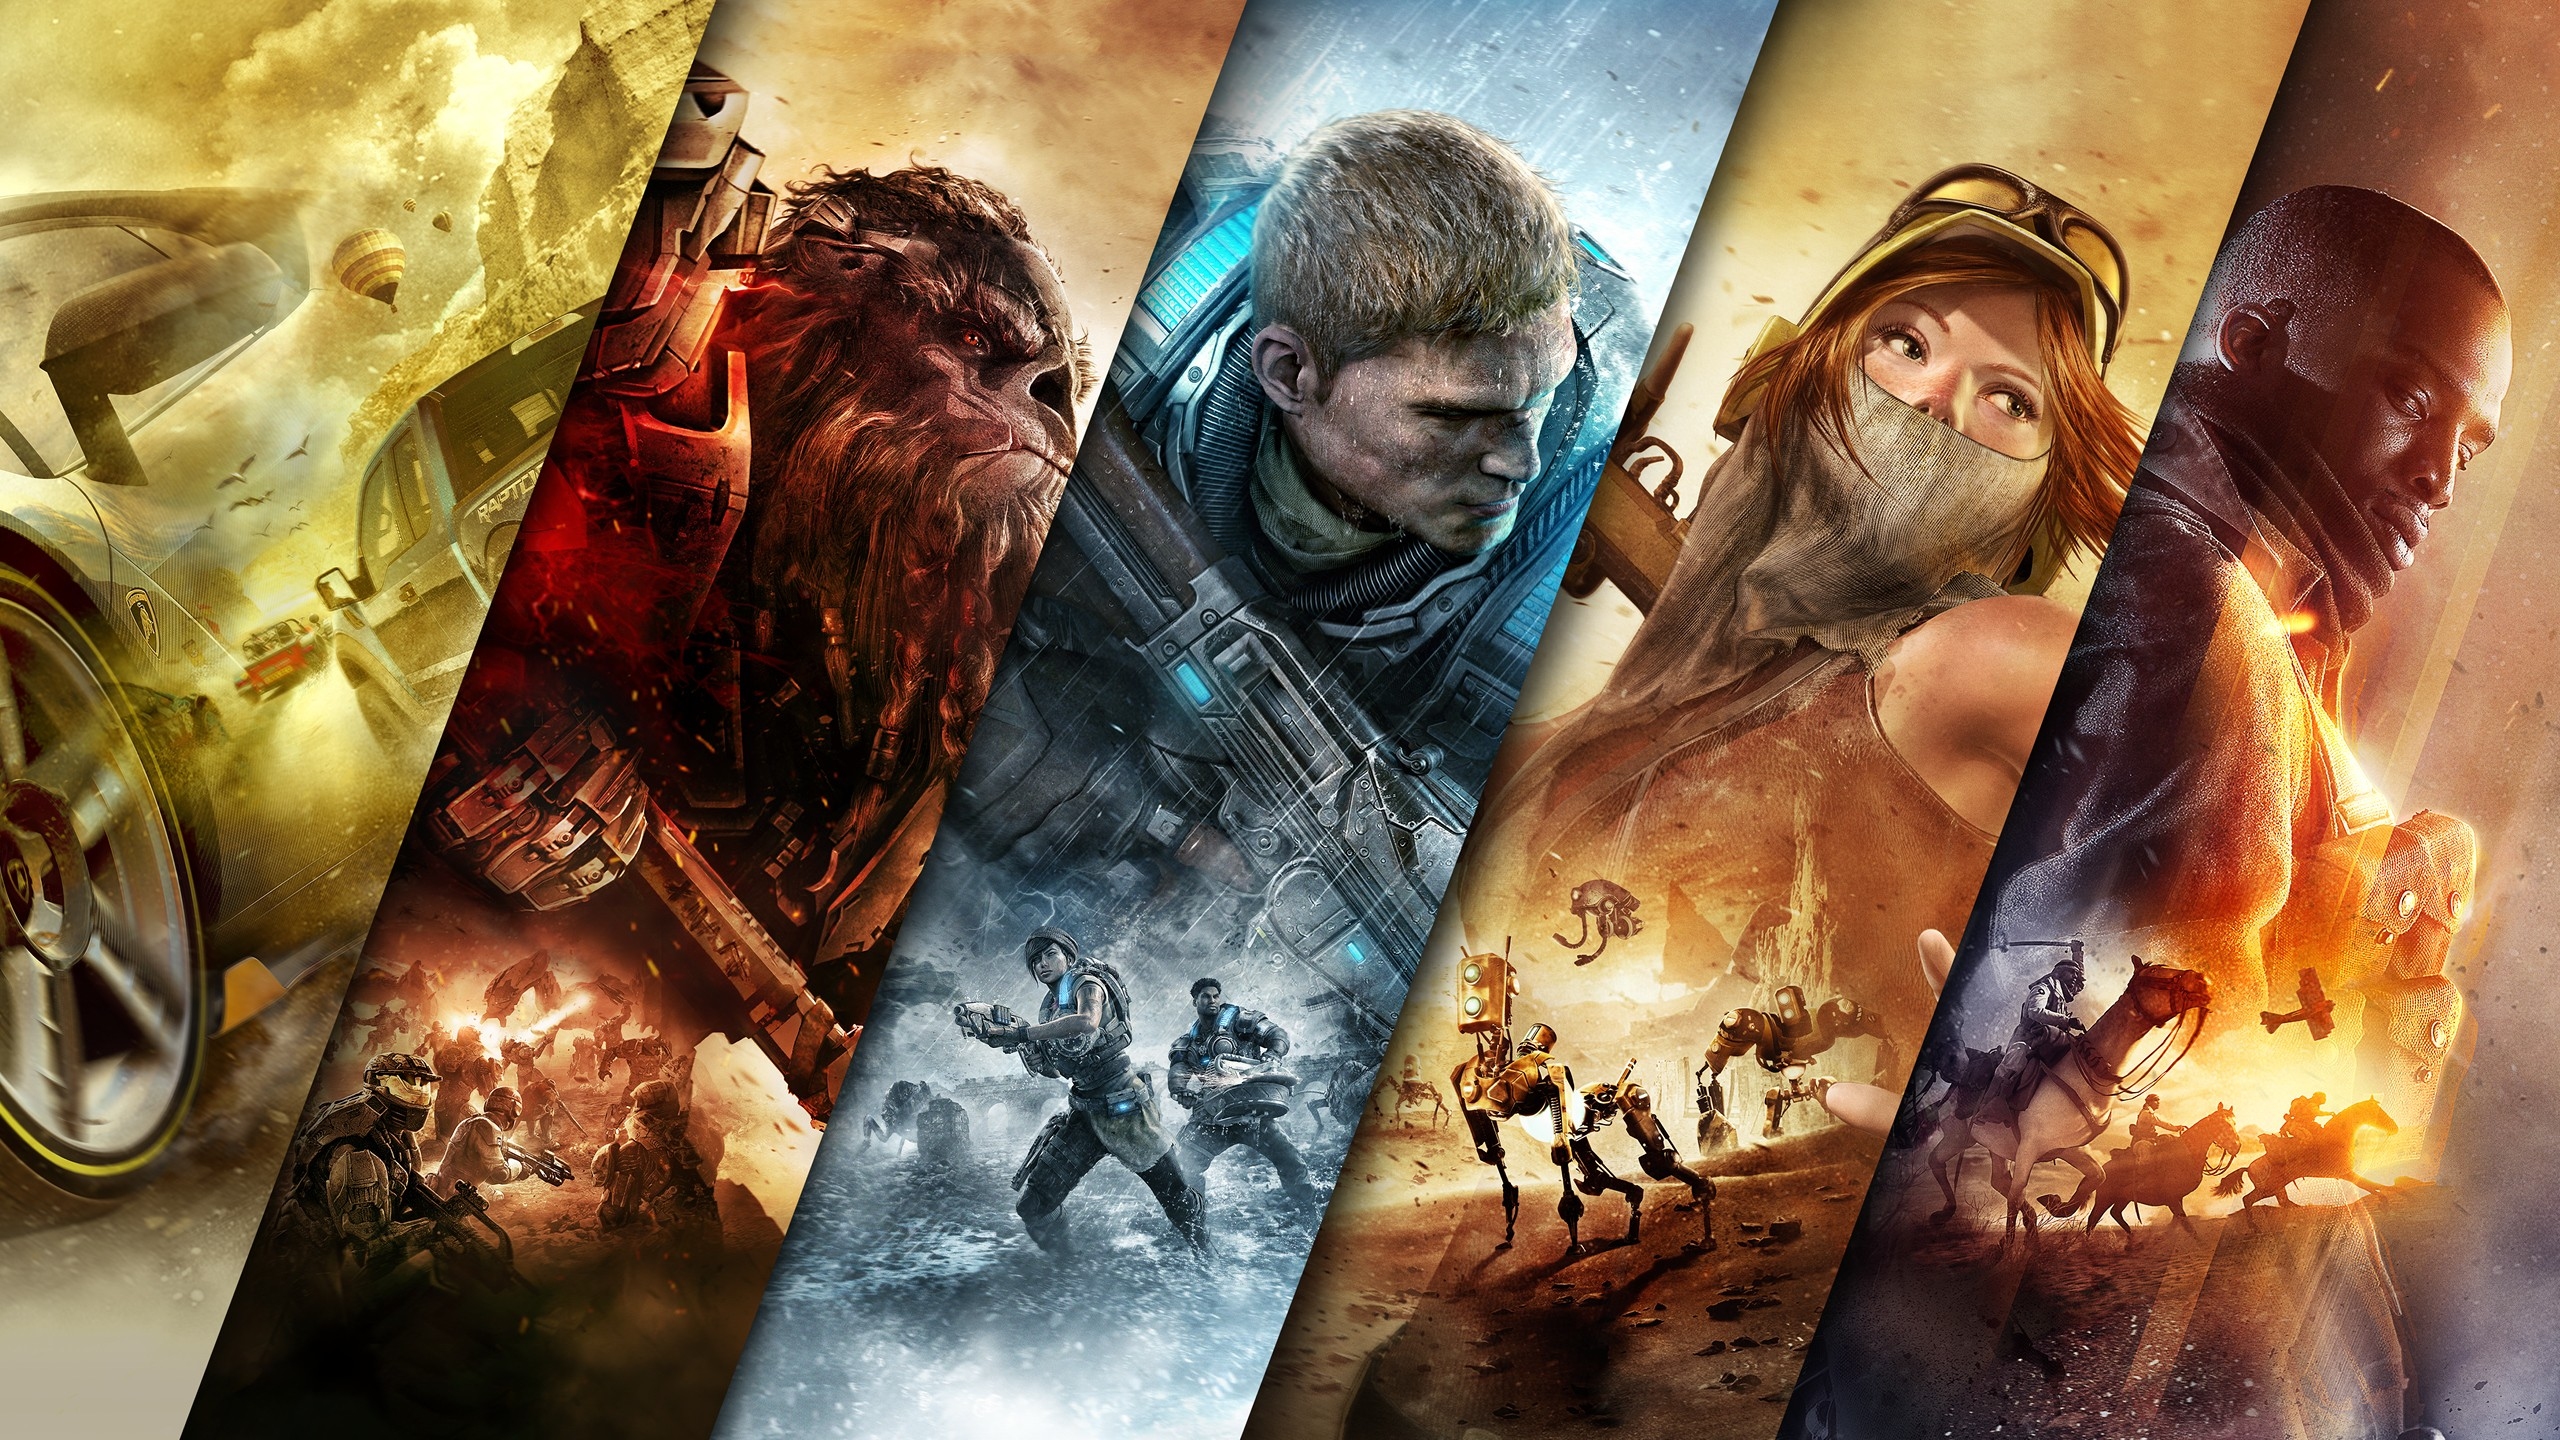 Xbox Games Jump Ahead Hd Wallpaper 2560x1440 Wallpaper The Hot Desktop Wallpapers And Backgrounds For Your Pc And Mobile